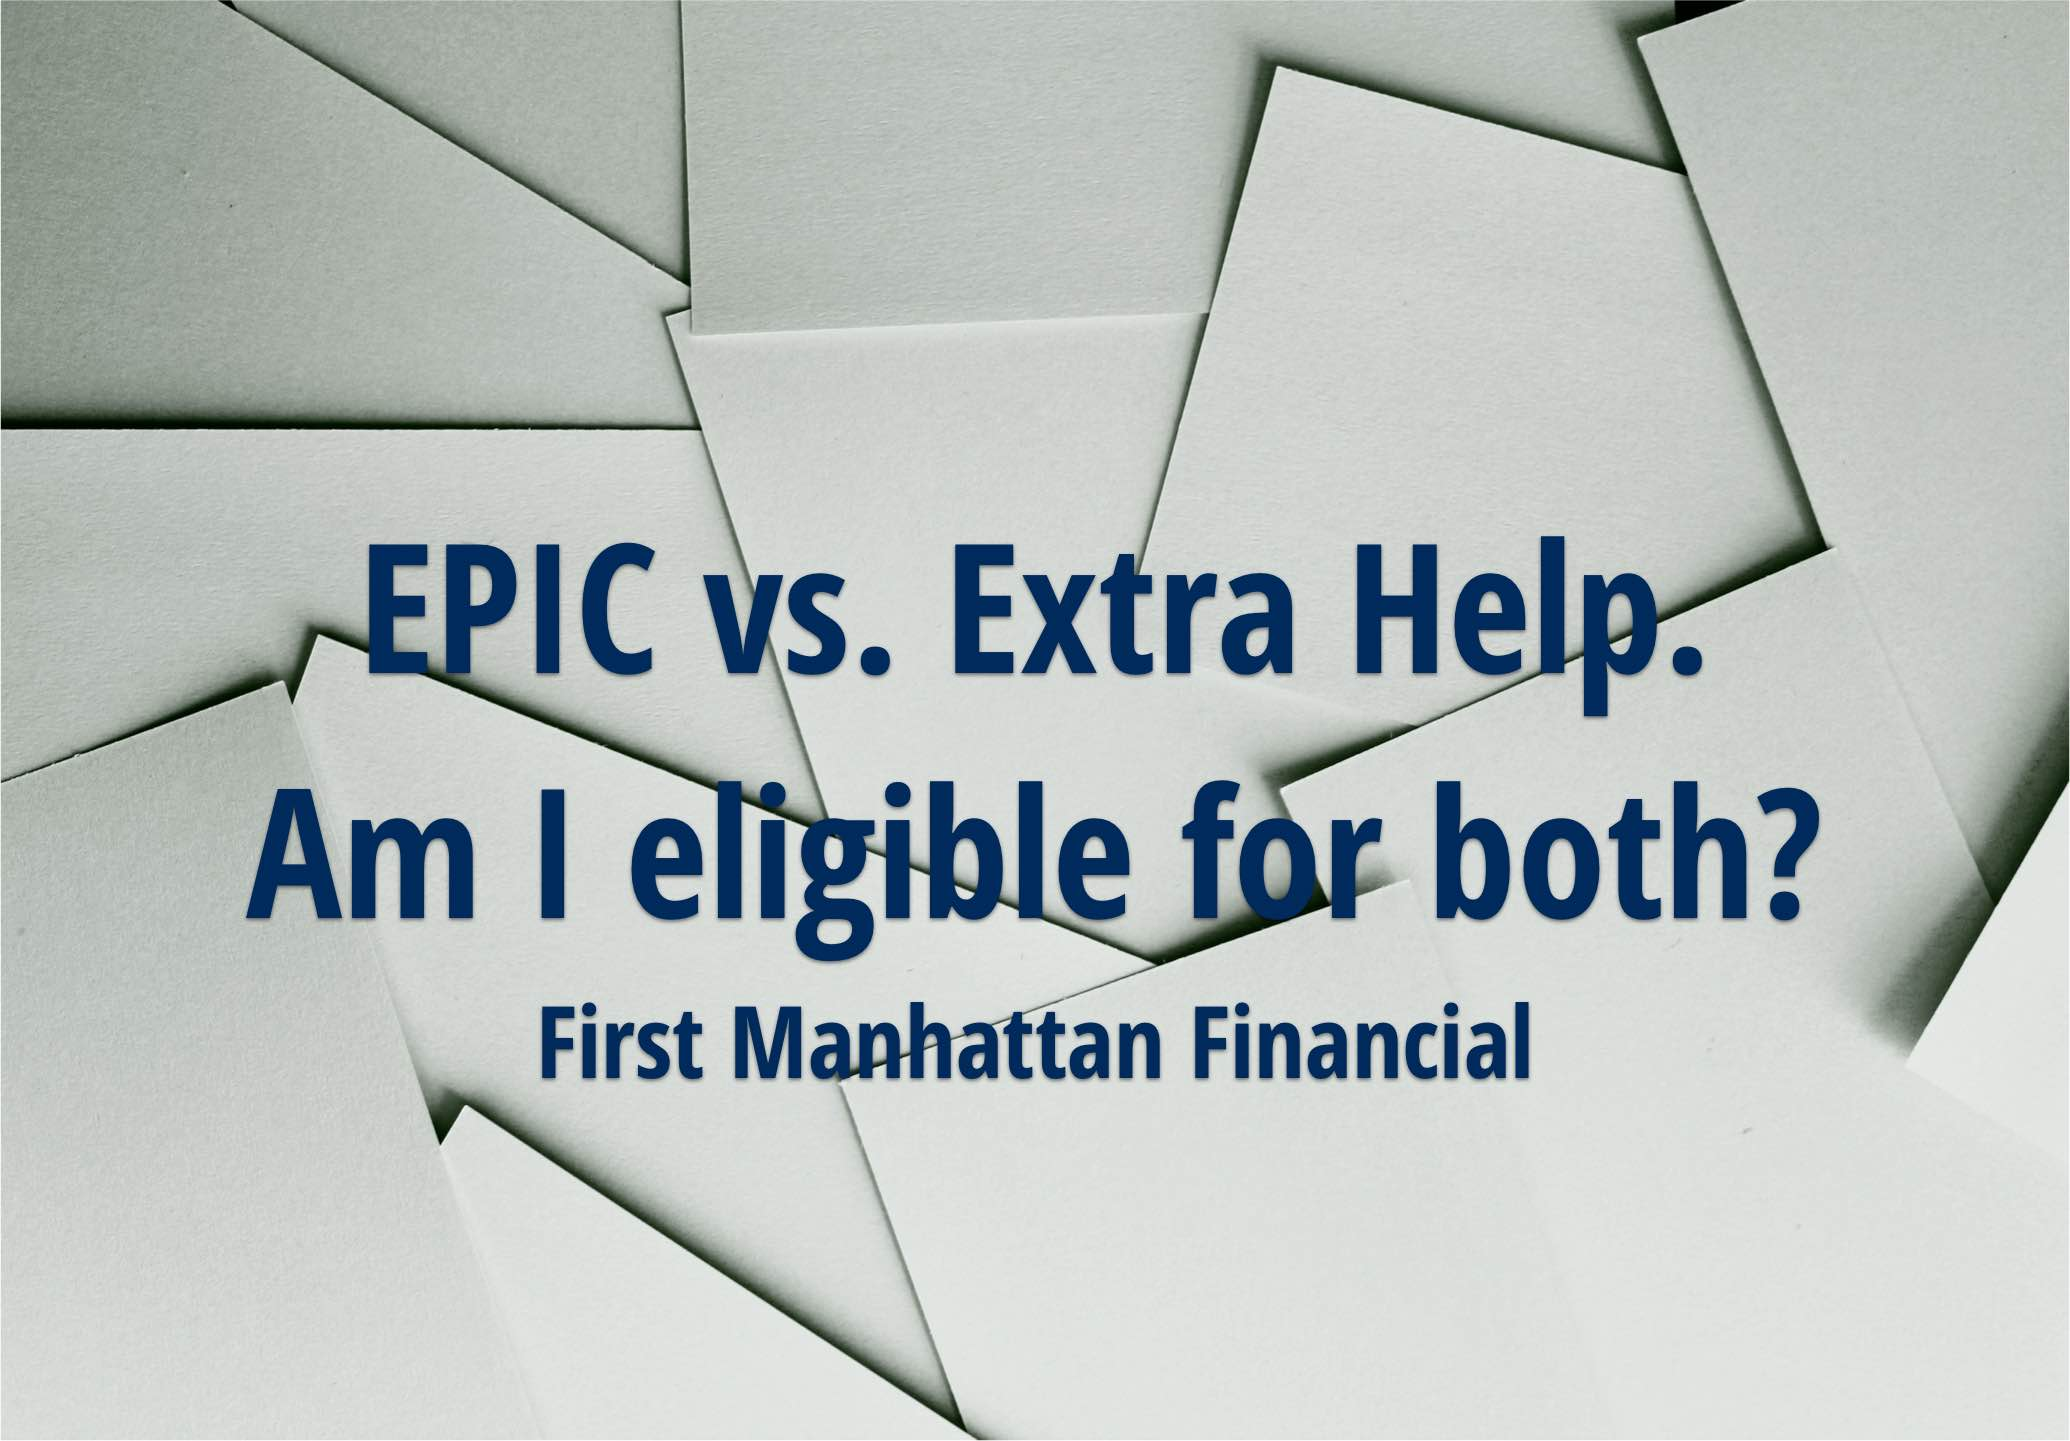 EPIC vs. Extra Help. Am I eligible for both | First Manhattan Financial